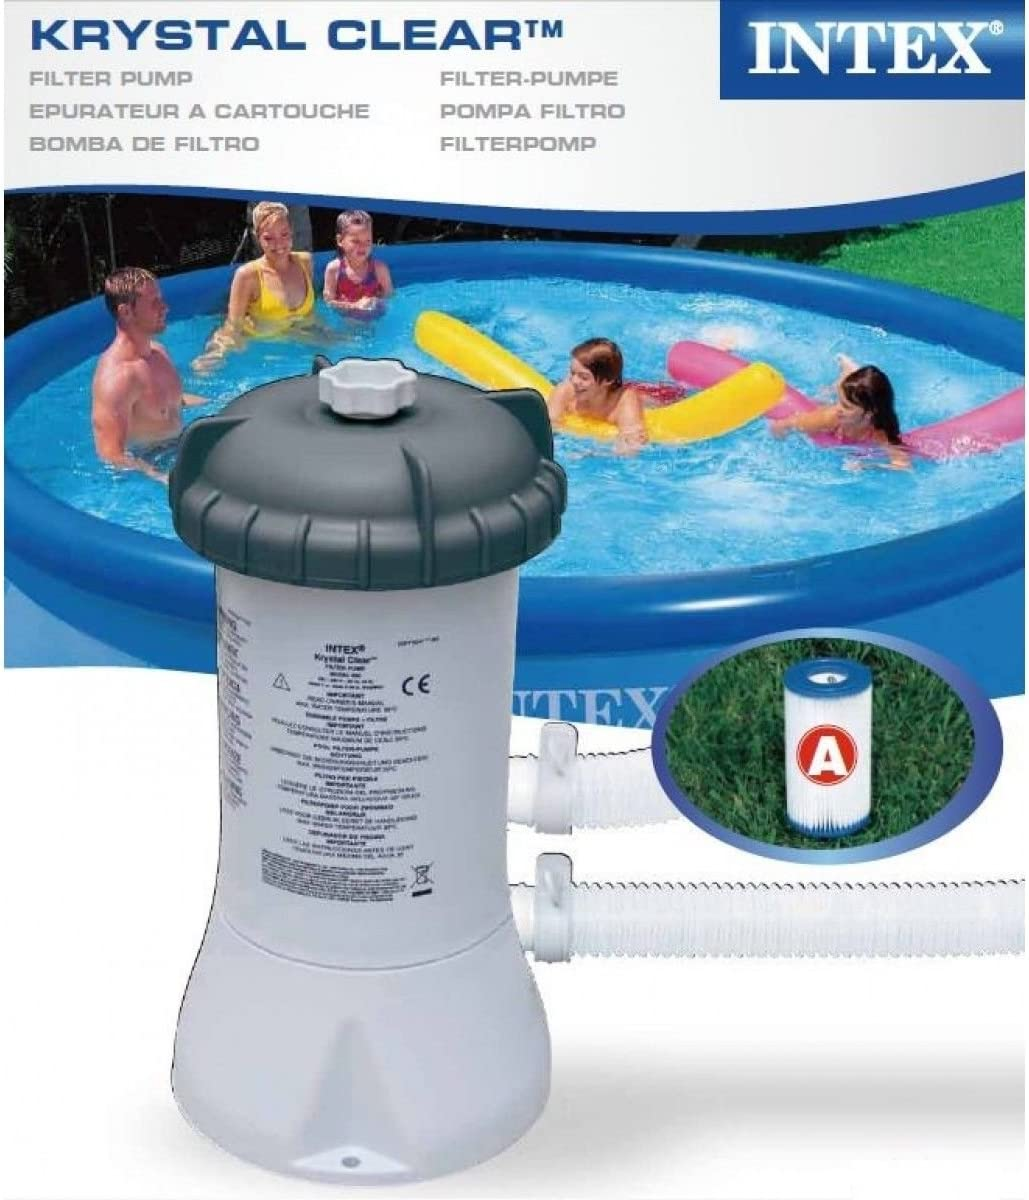 Depuradora Piscinas Krystal Clear Intex: Amazon.es: Hogar